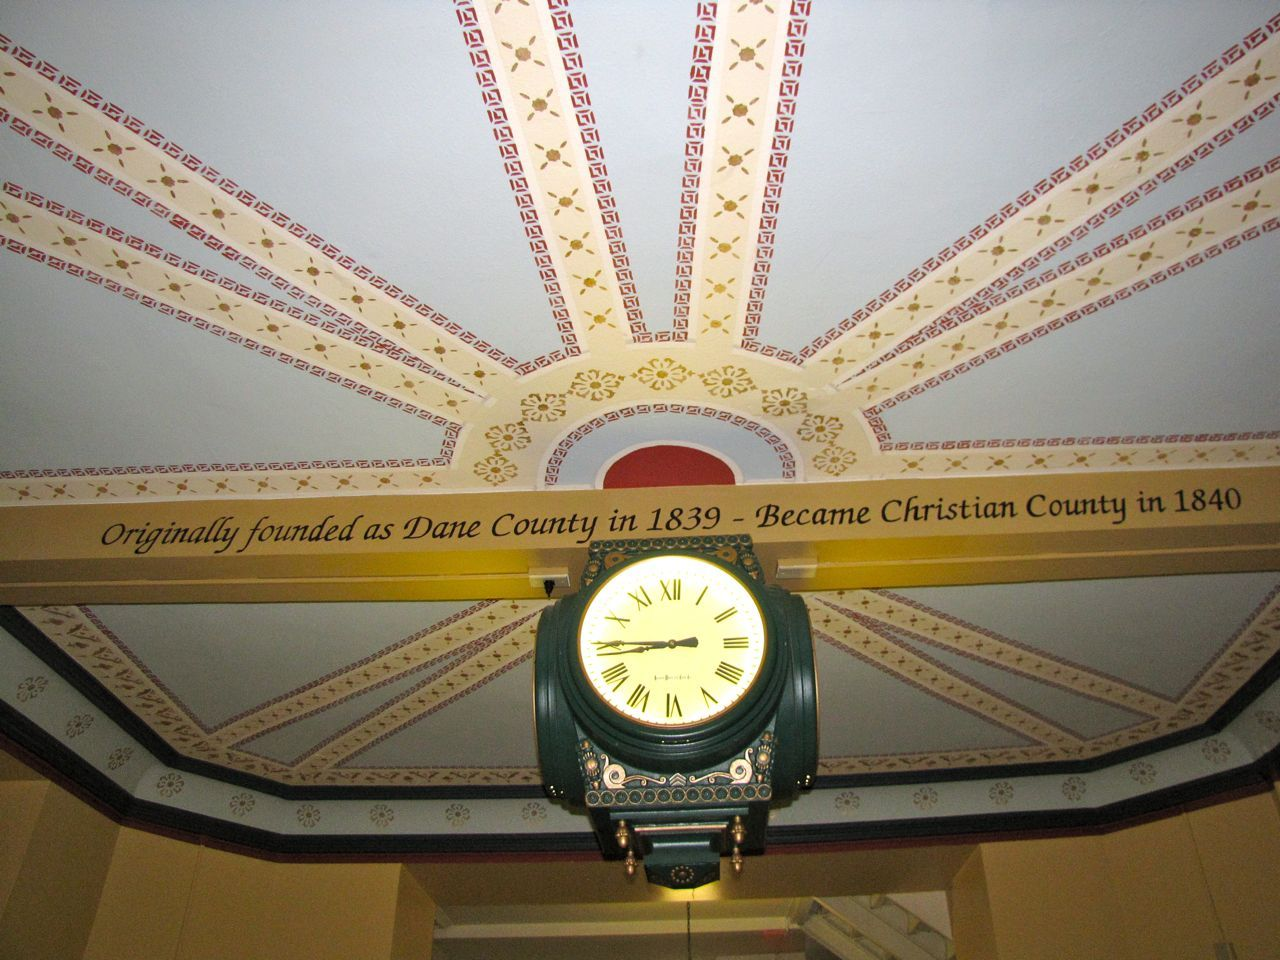 The first-floor clock that is mechanically tied to the one in the courthouse clock tower.